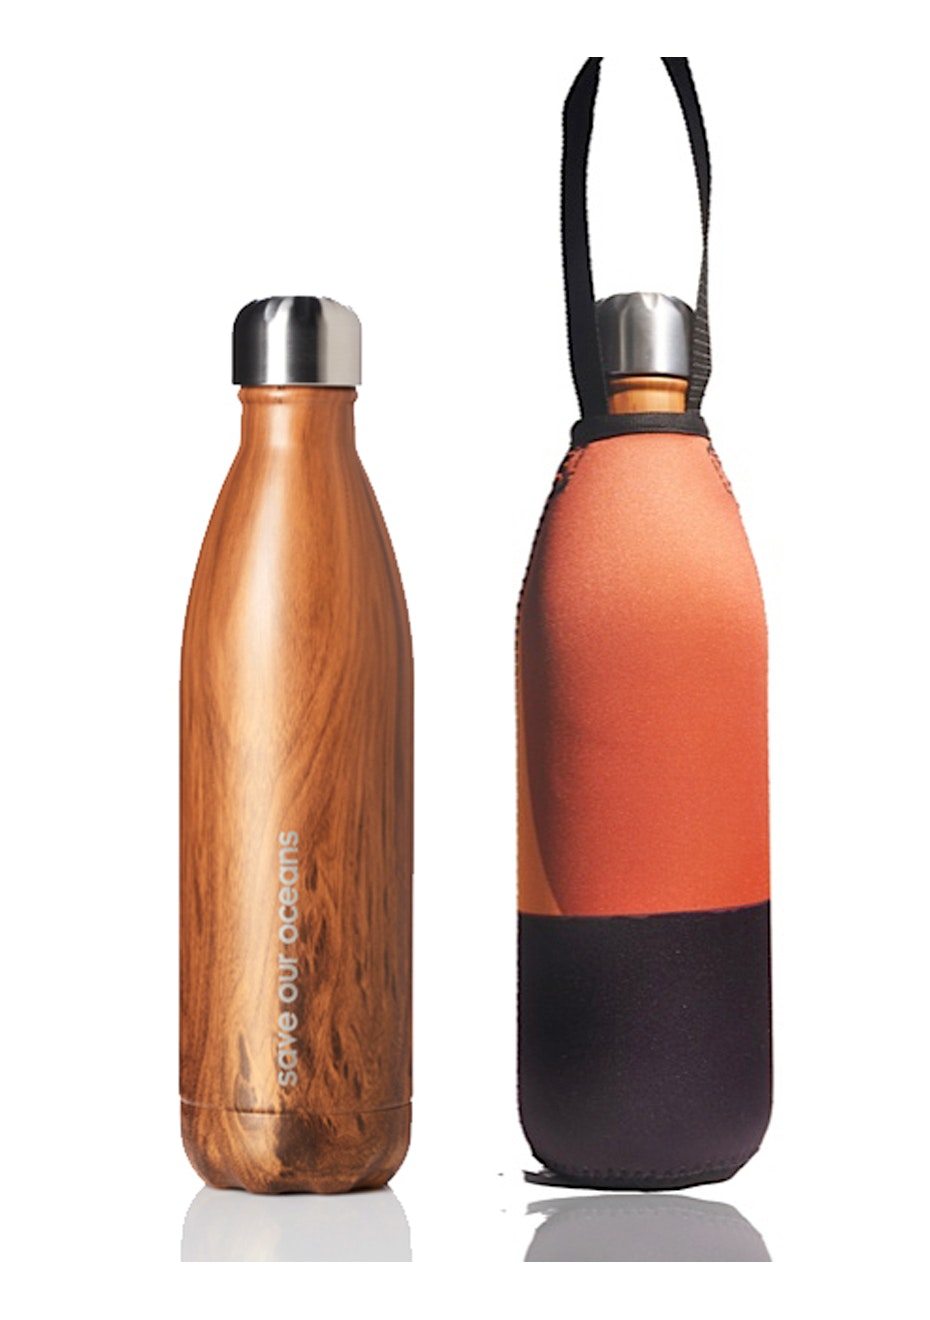 BBBYO - Future Bottle+ Carry Cover (Horizon Print) -750 ml  Woodgrain